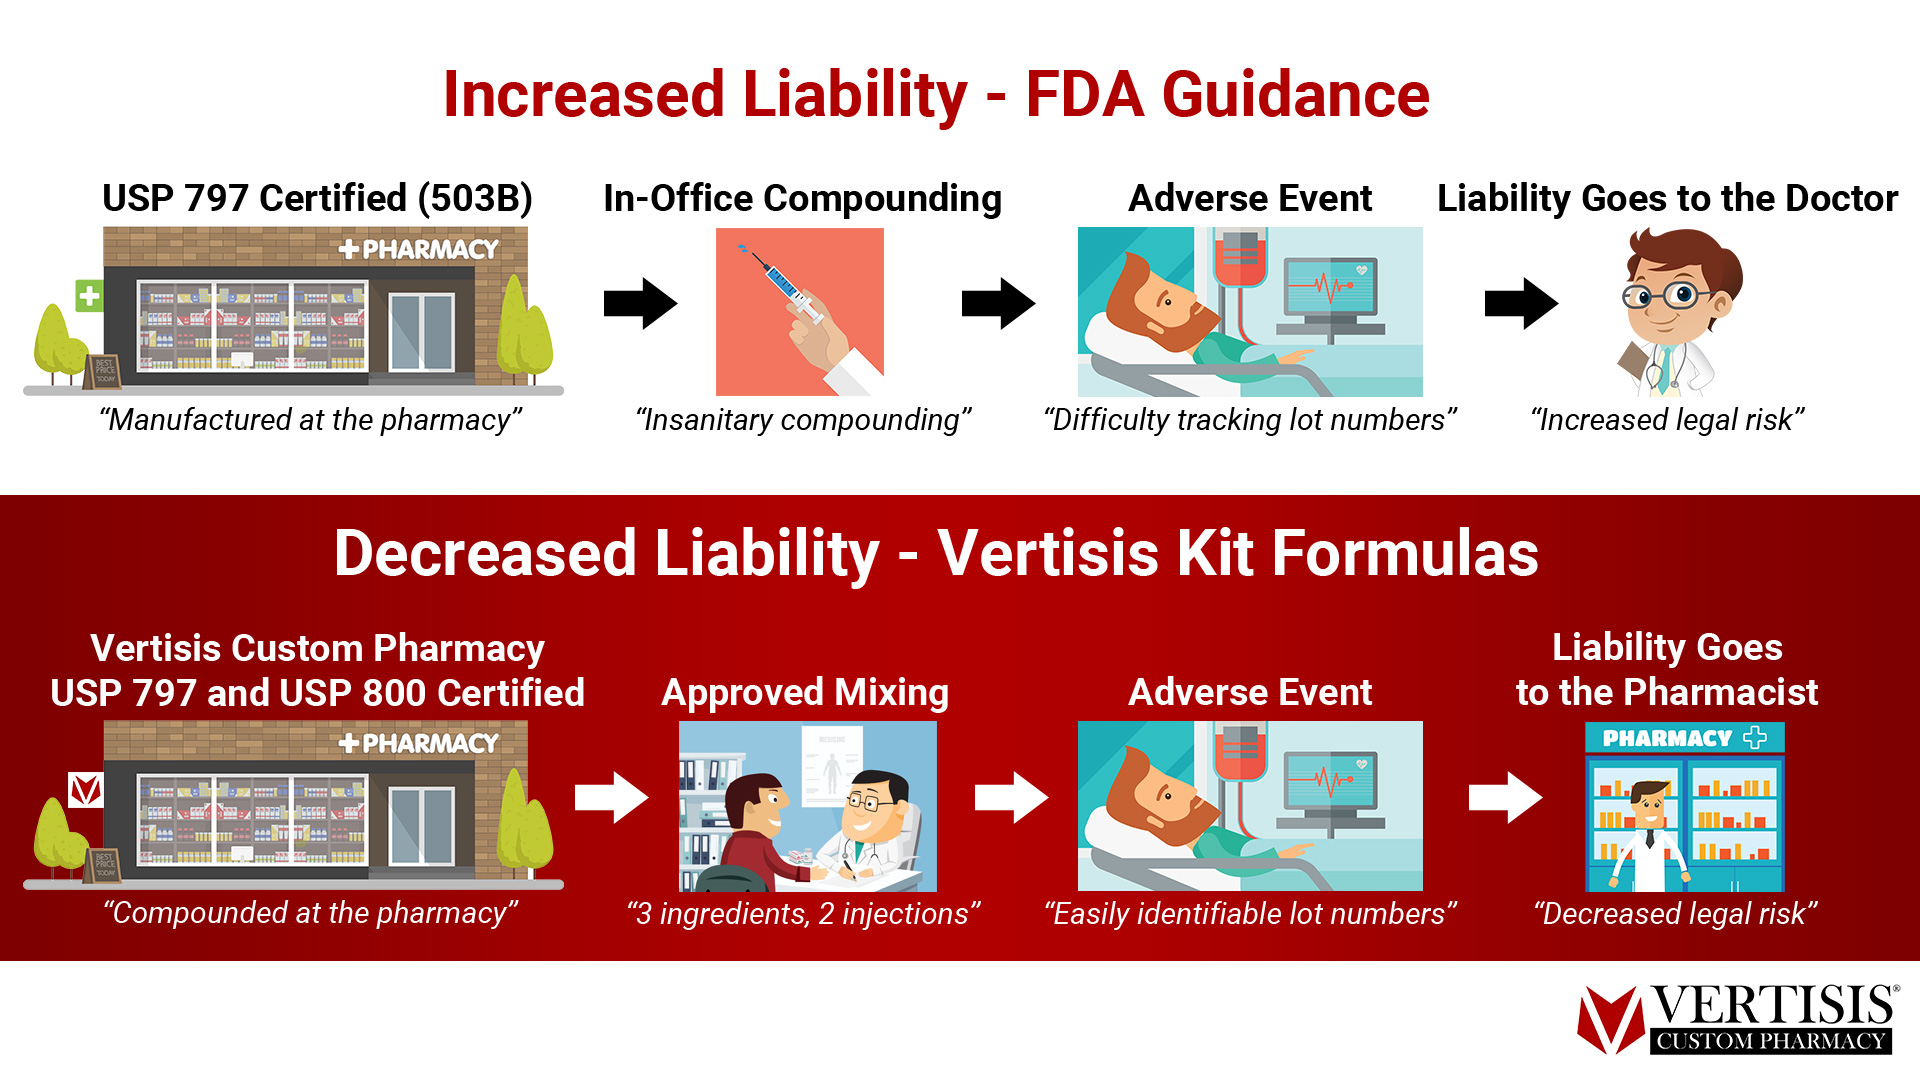 Increased Liability - FDA Guidance